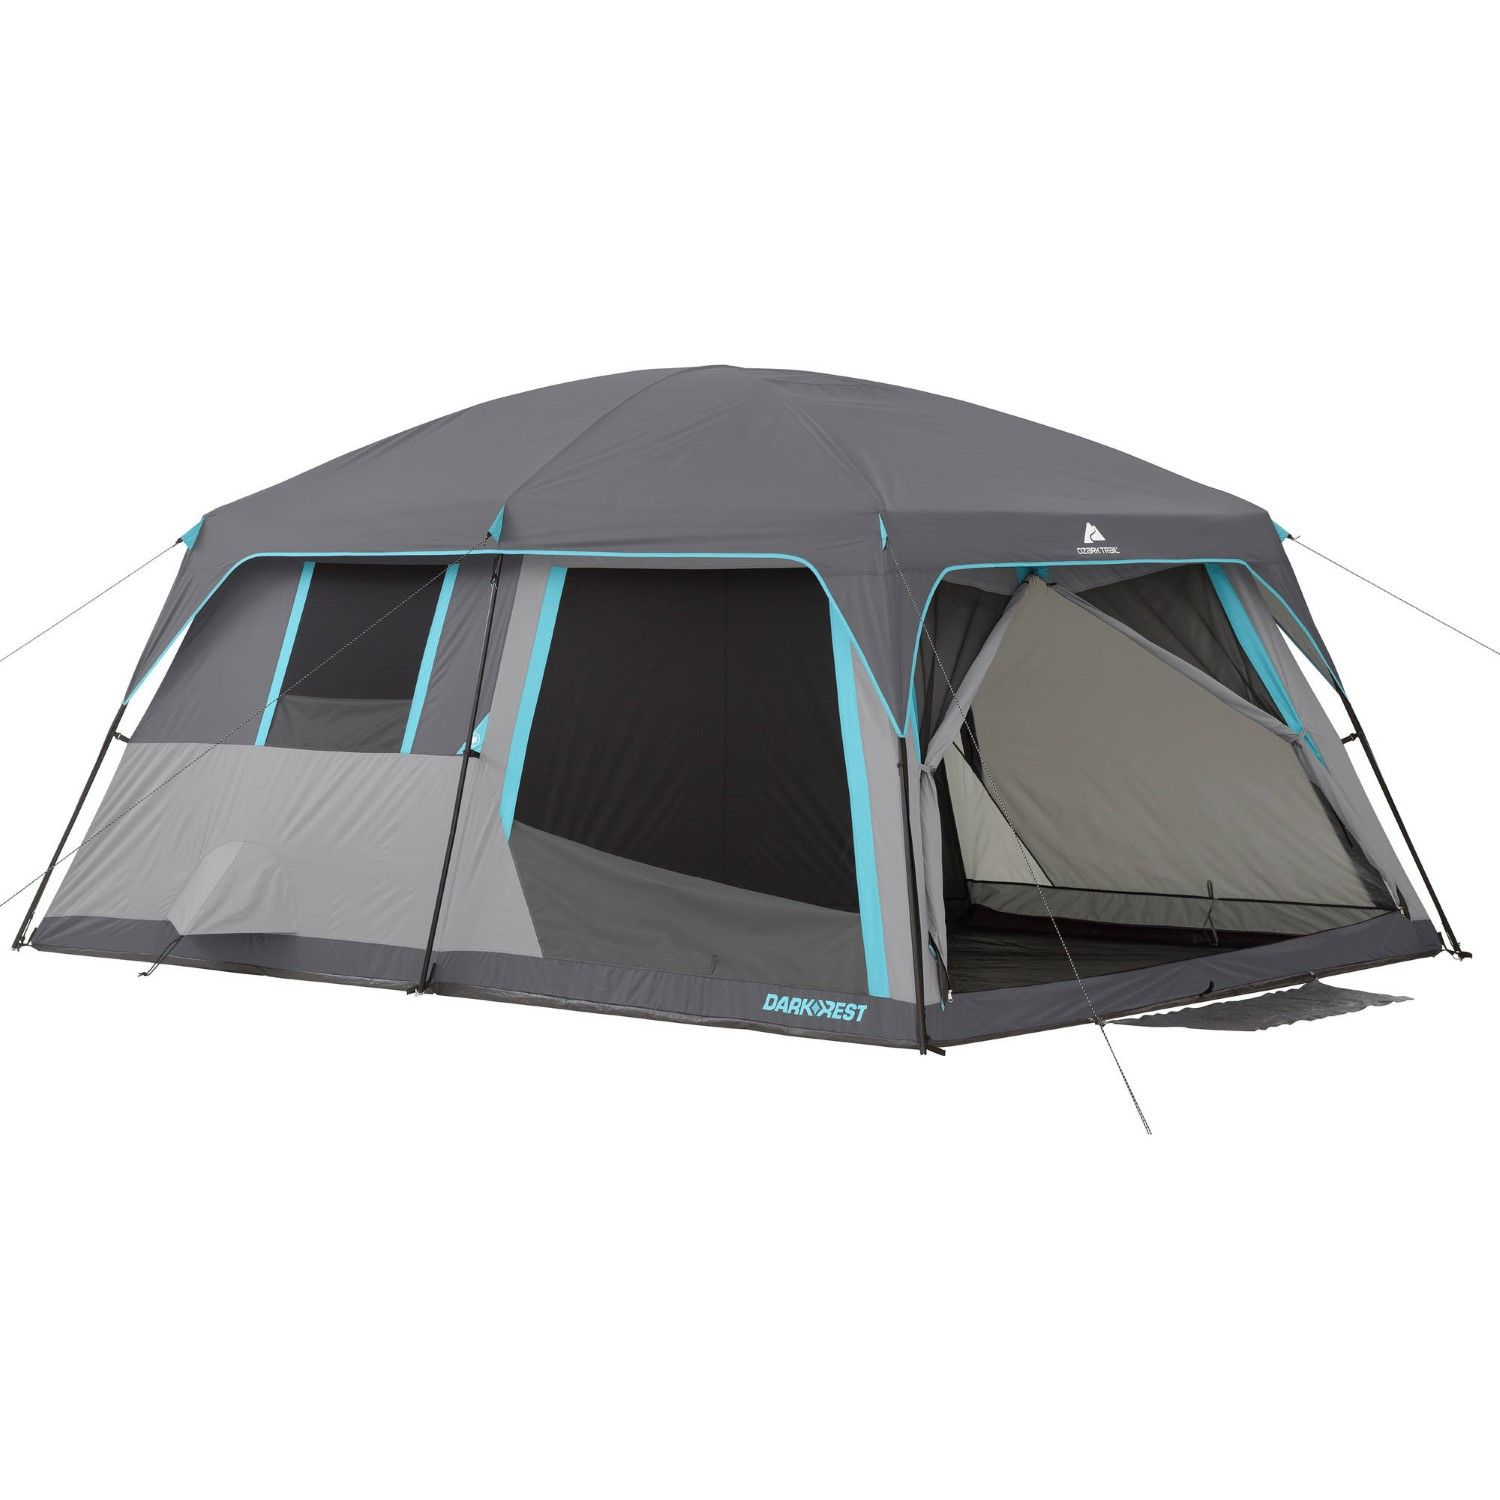 The Ozark Trail 10 Person Half Dark Rest Cabin Tent Features An Innovative Dark Resttm Technology That Blocks Sunlight To Help You Cabin Tent Tent Ozark Trail